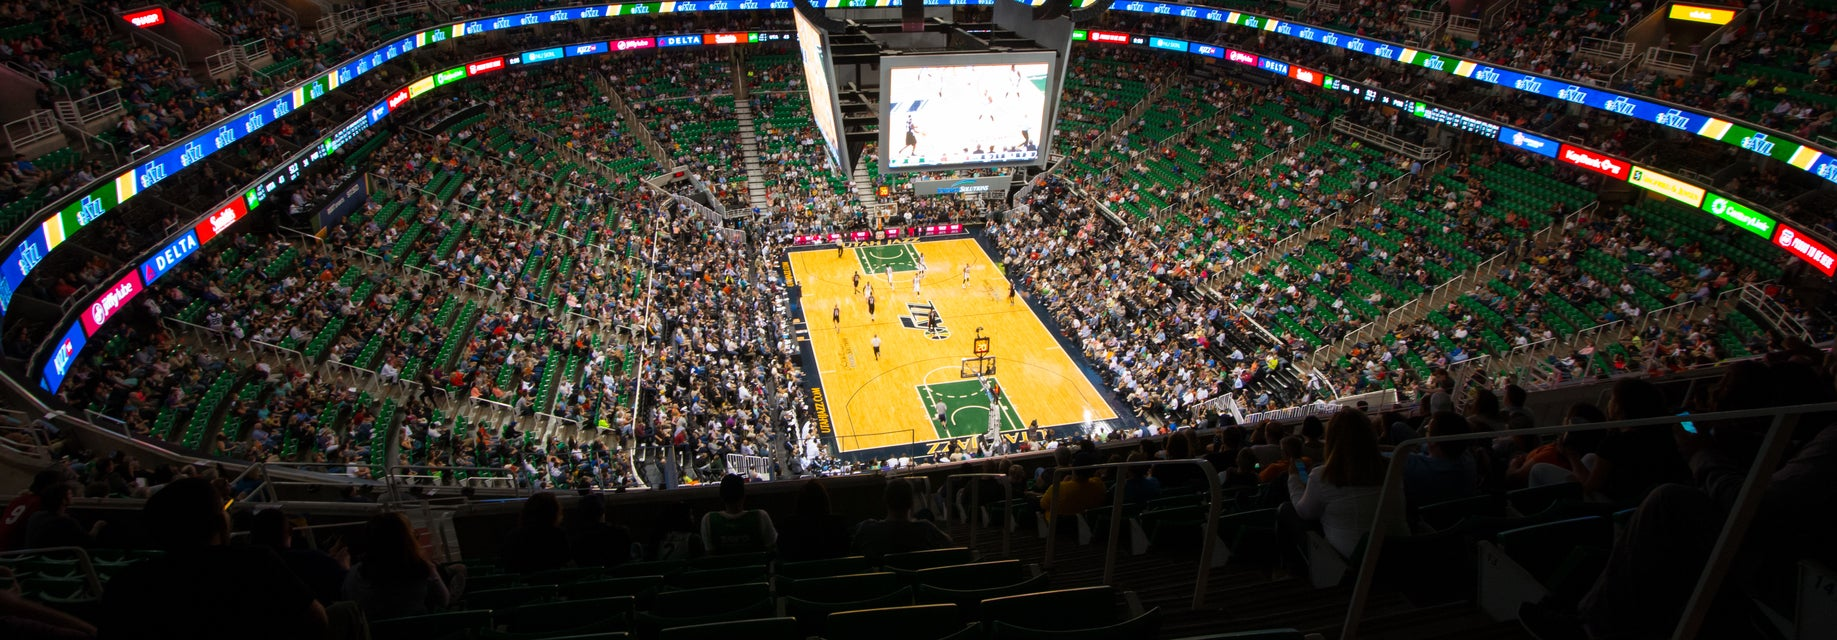 Seat view from Upper Bowl Baseline